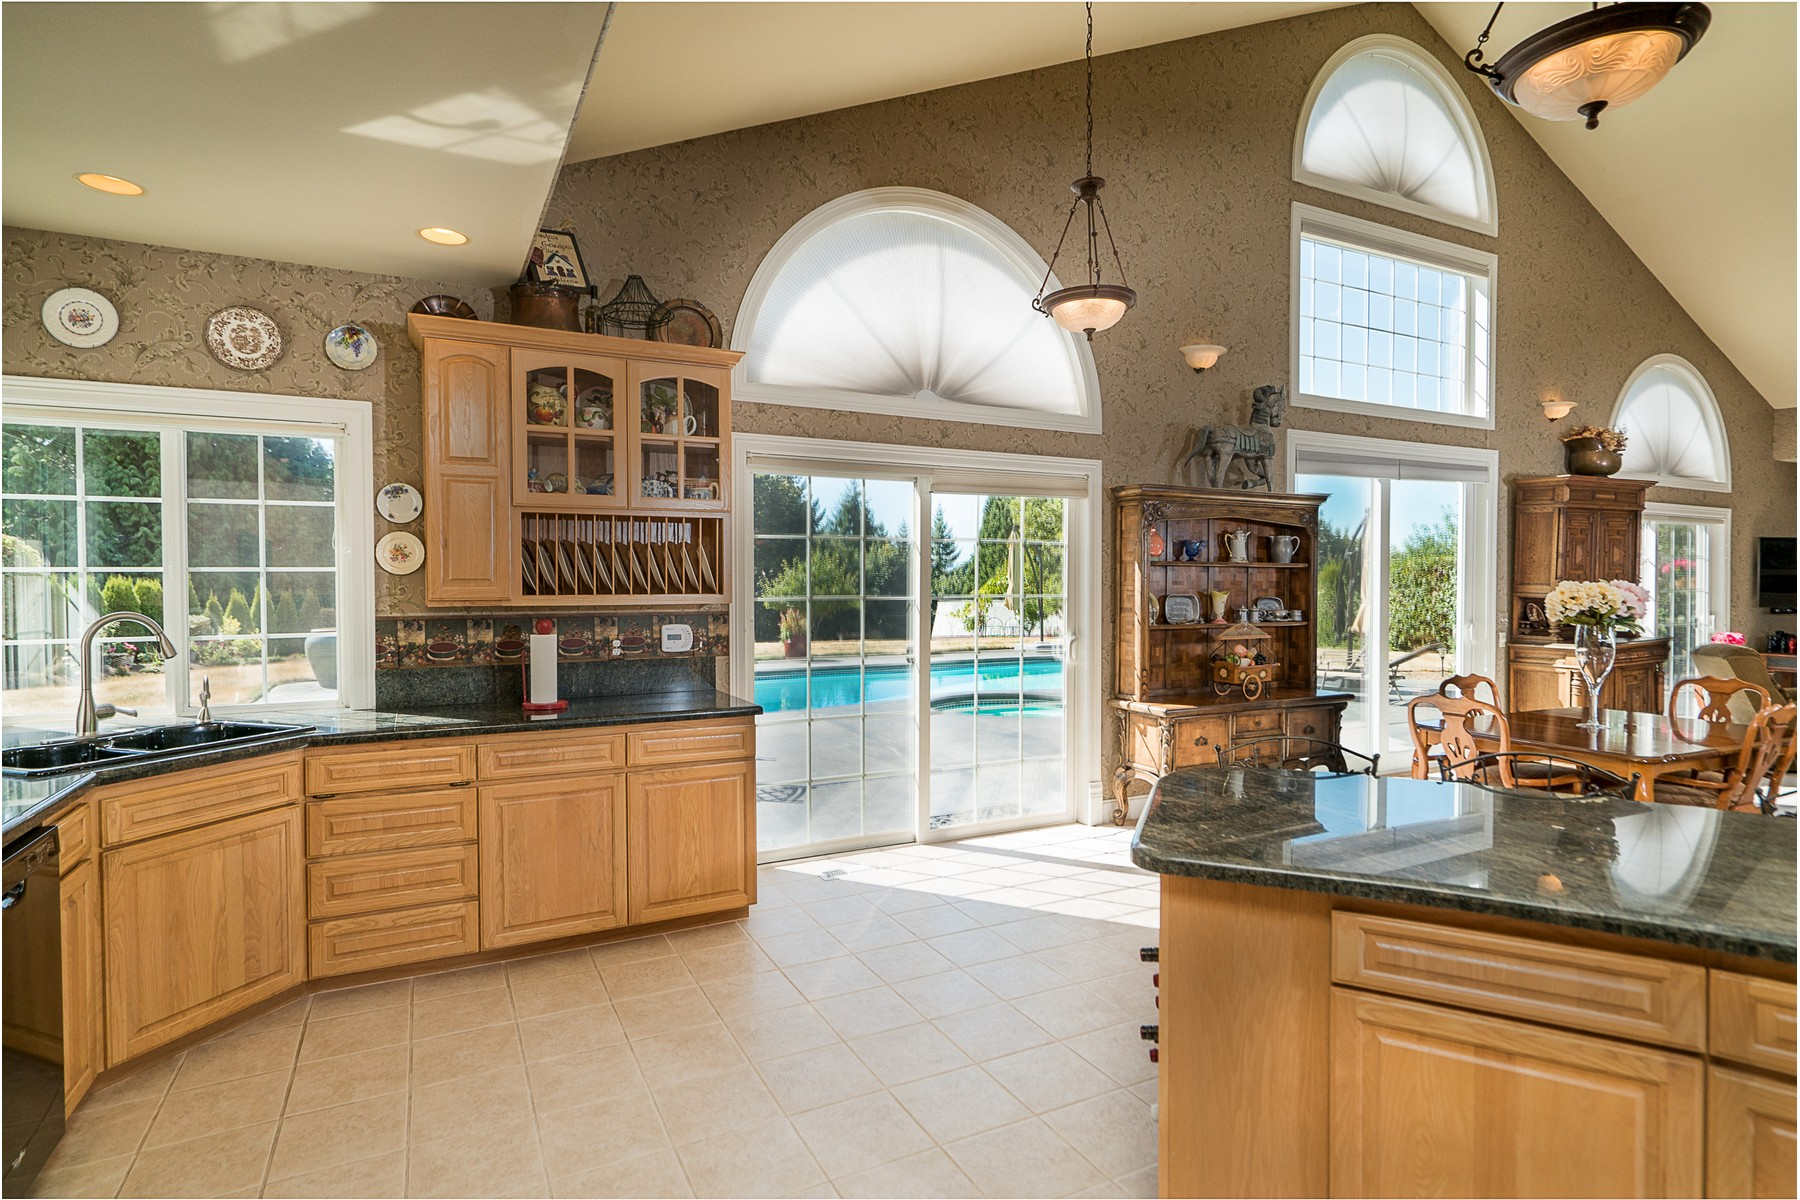 Additional photo for property listing at Wellington NW Contemporary 23110 75th Ave SE Woodinville, Washington 98072 États-Unis